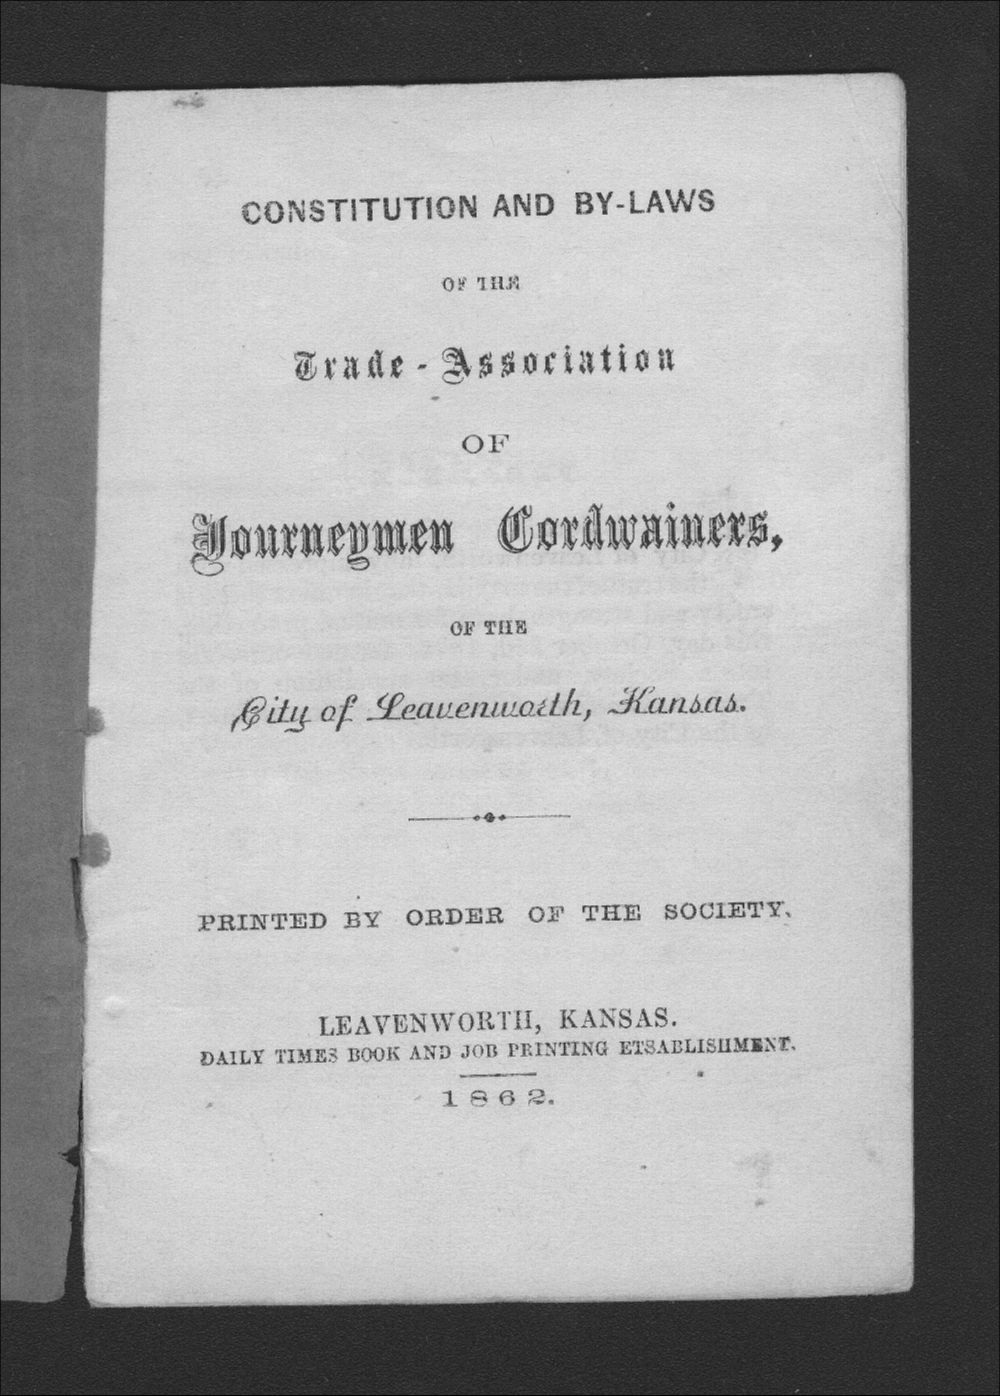 Constitution and By-Laws of the Trade Association of Journeymen Cordwainers, of the City of Leavenworth, Kansas - Title Page